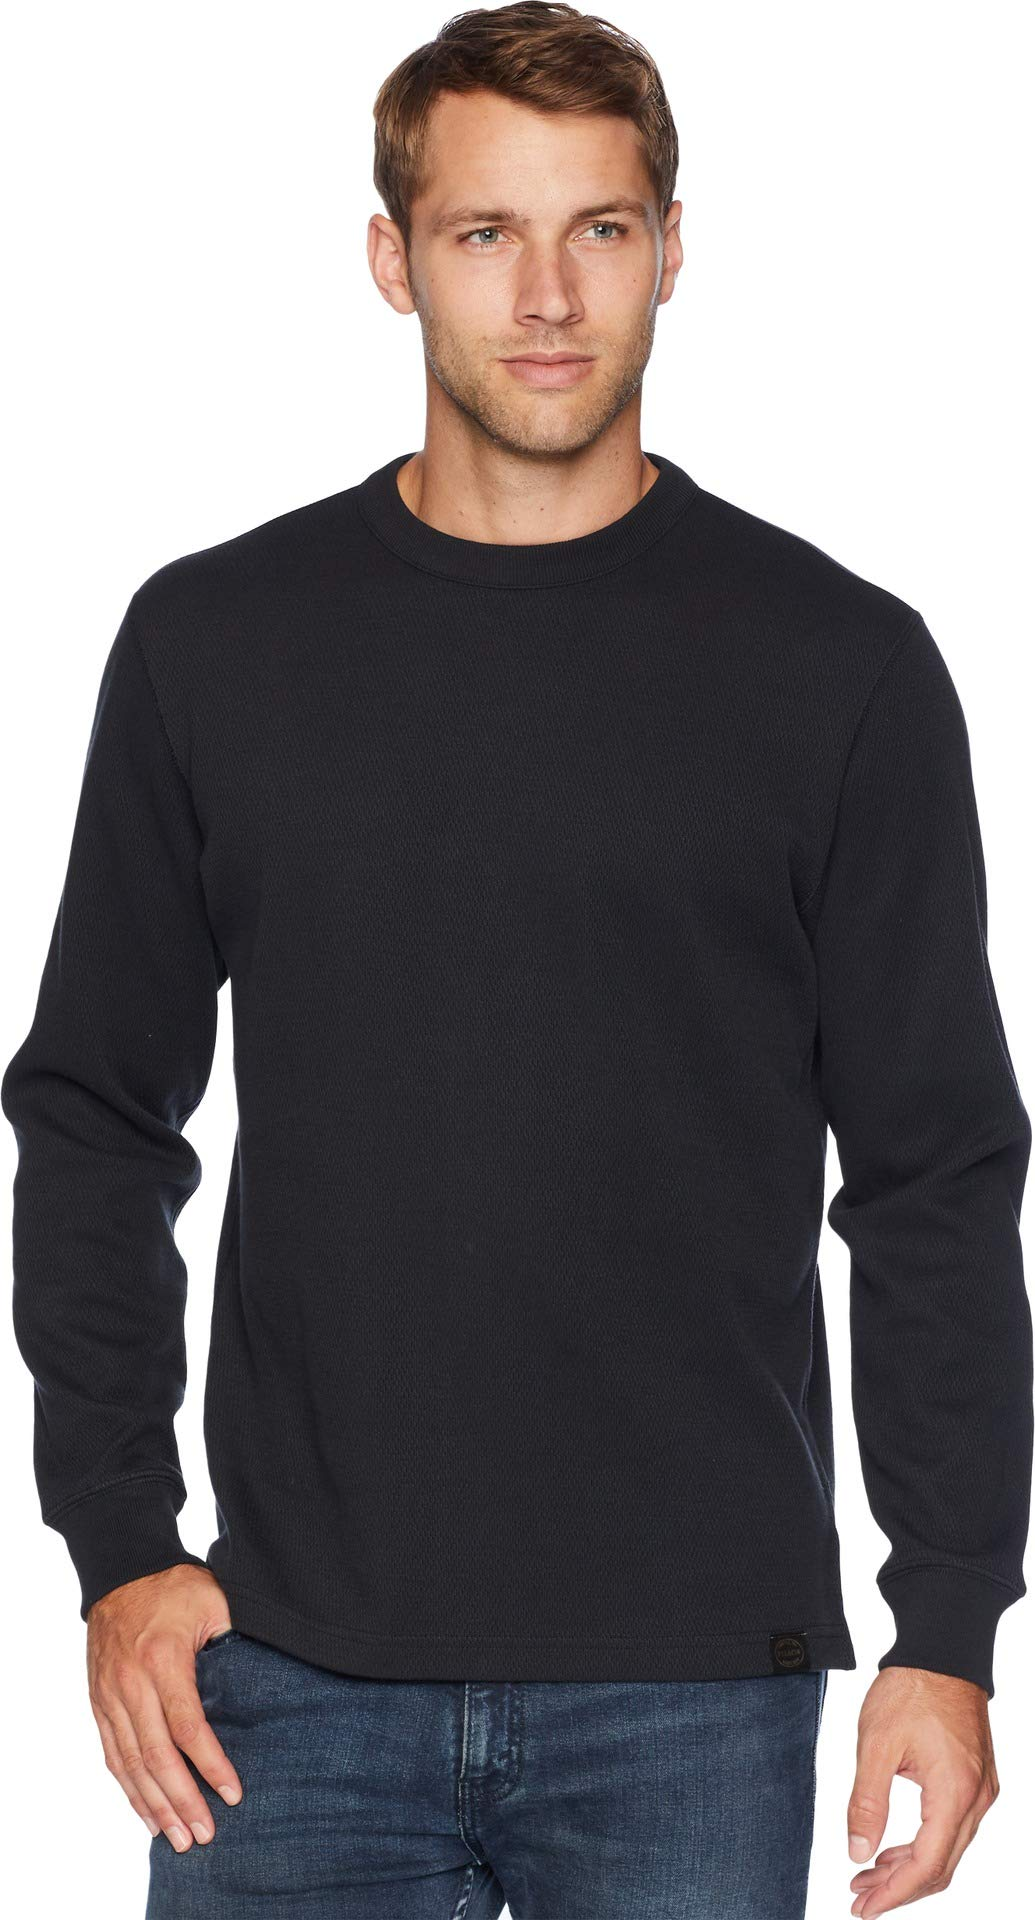 Filson Men's Waffle Knit Thermal Crew Neck Navy X-Large by Filson